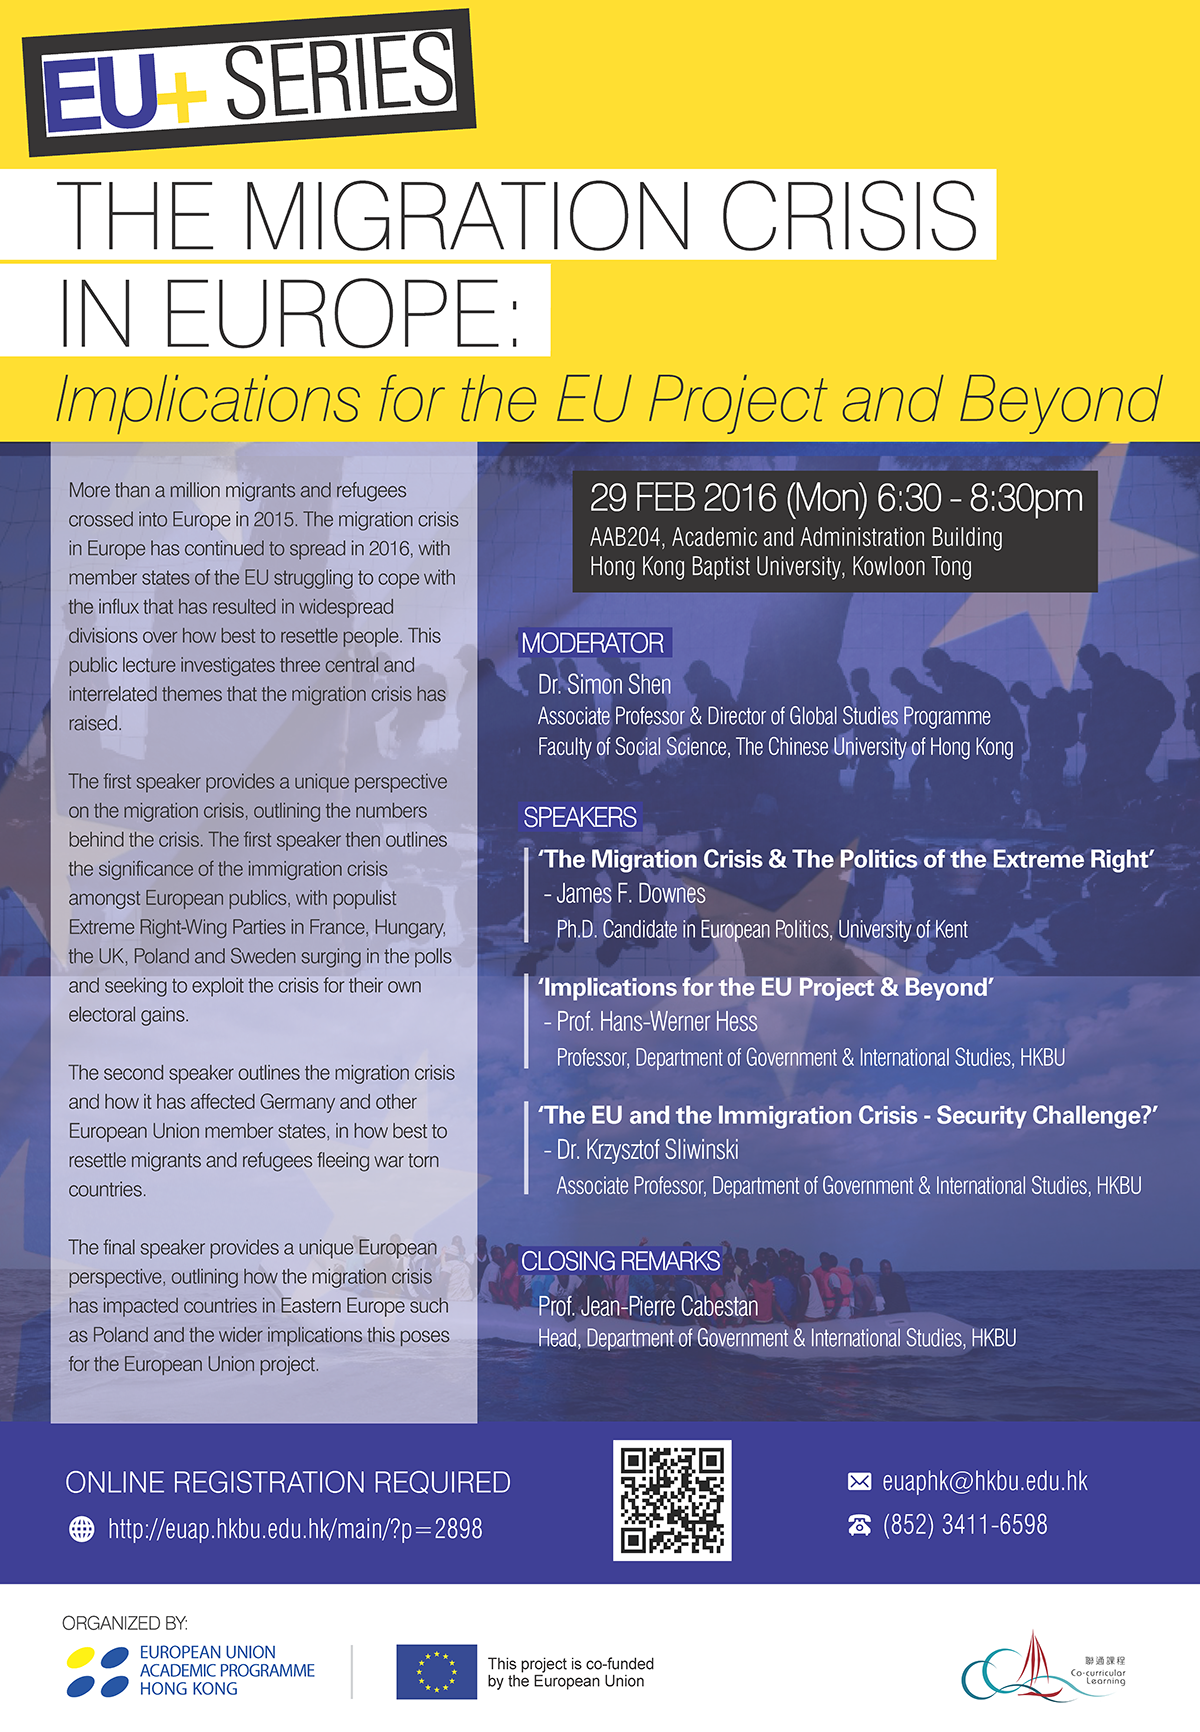 The Migration Crisis in Europe: Implications For The EU Project and Beyond